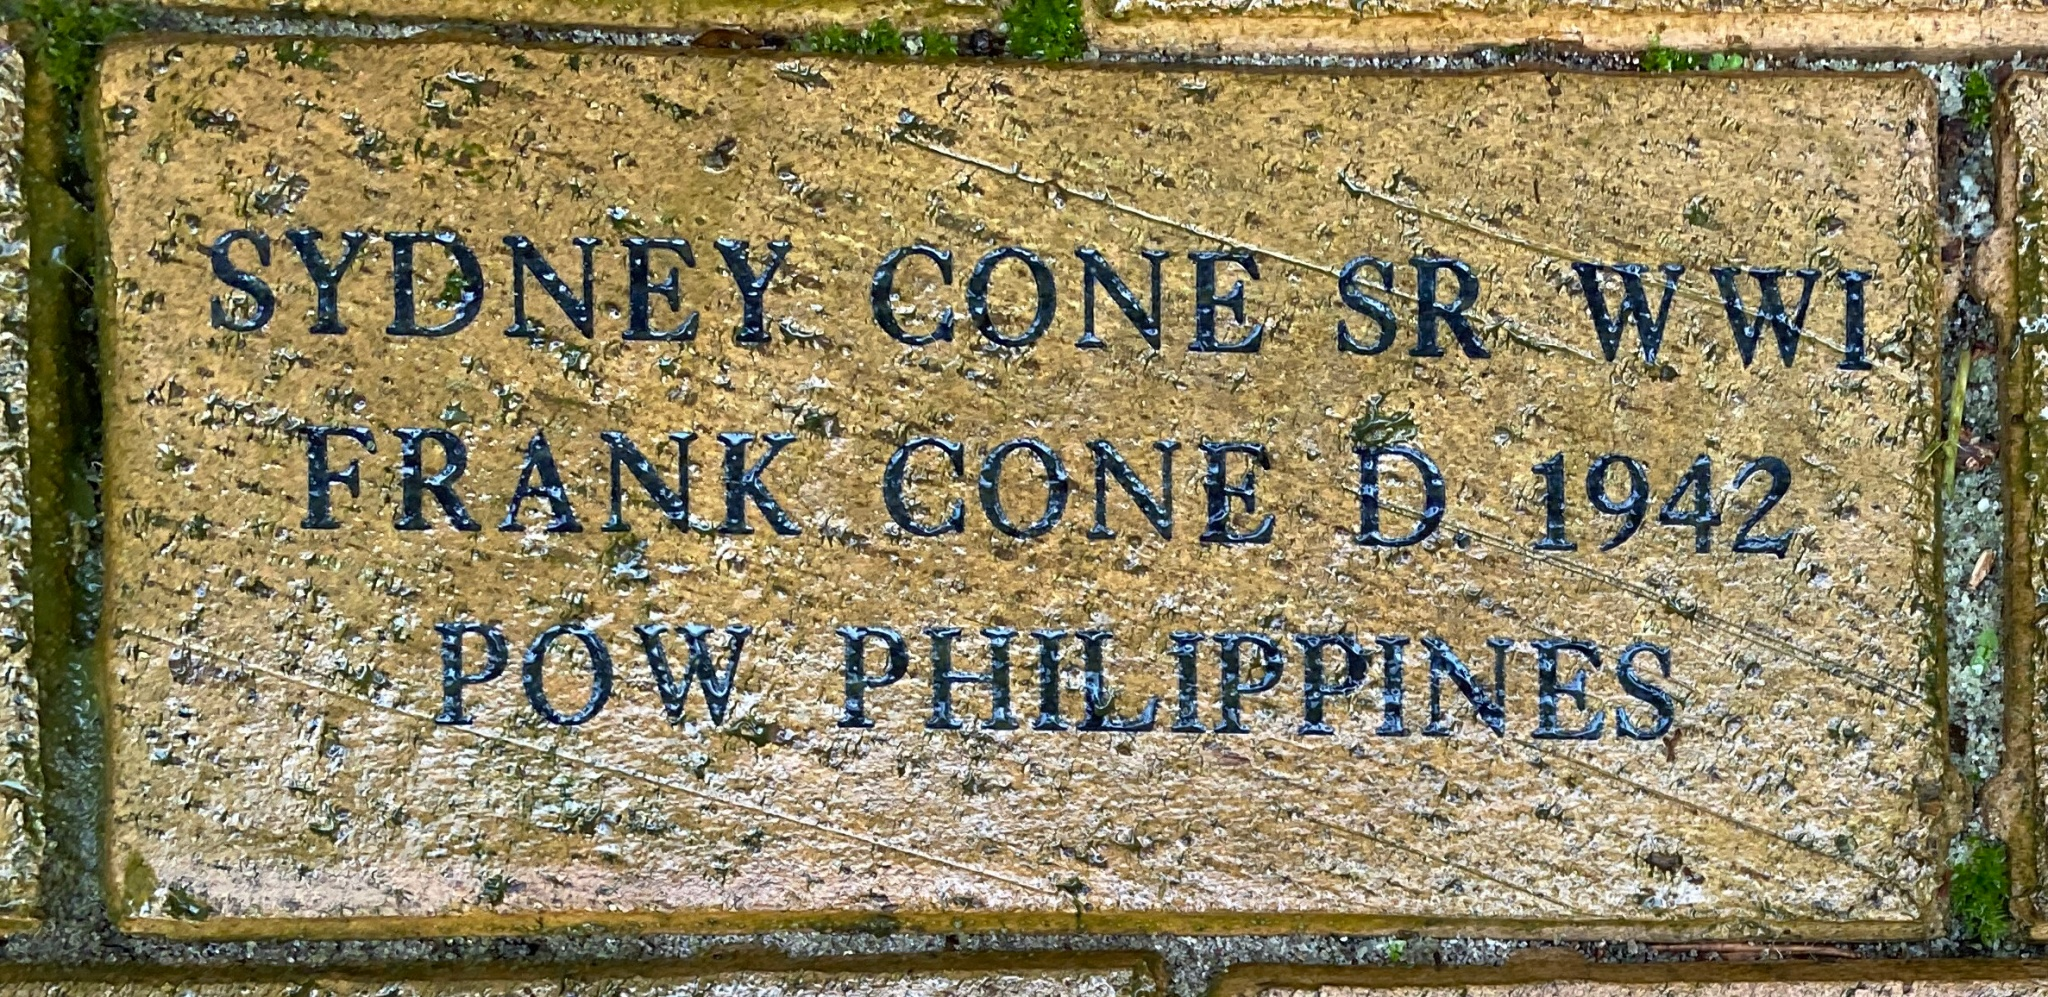 SYDNEY CONE SR WWI FRANK CONE D. 1942 POW PHILIPPINES